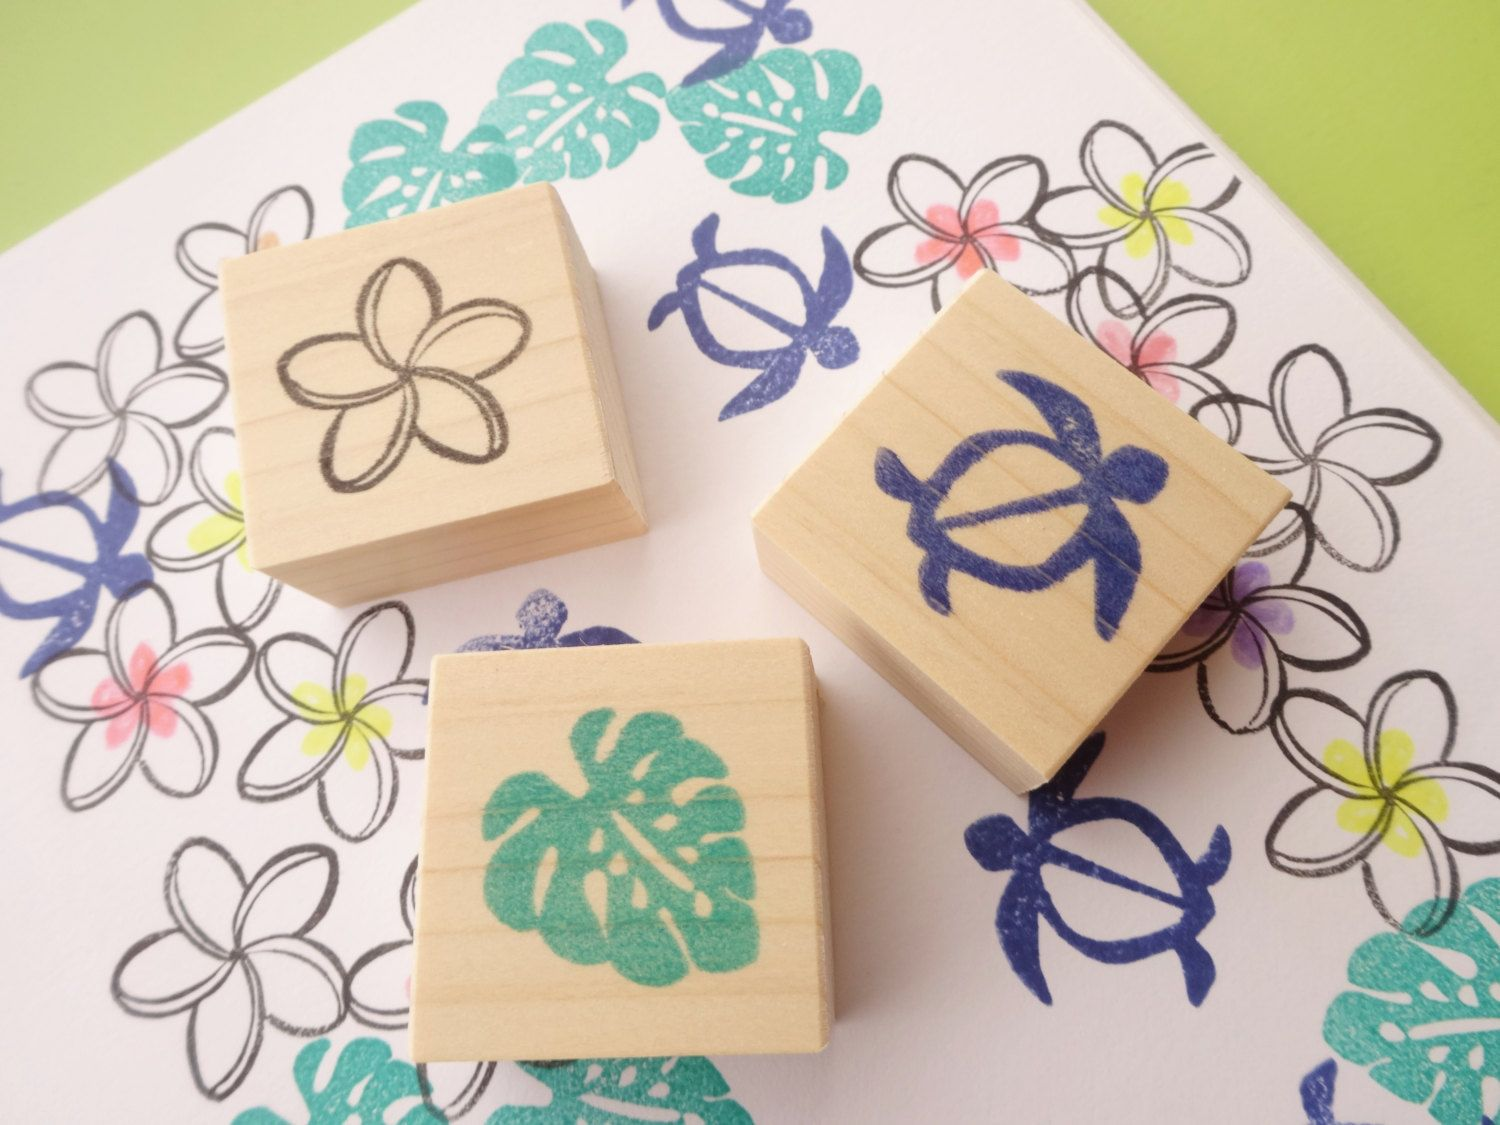 Holiday Crafts: Rubber Stamp Decorations Holiday Crafts: Rubber Stamp Decorations new photo